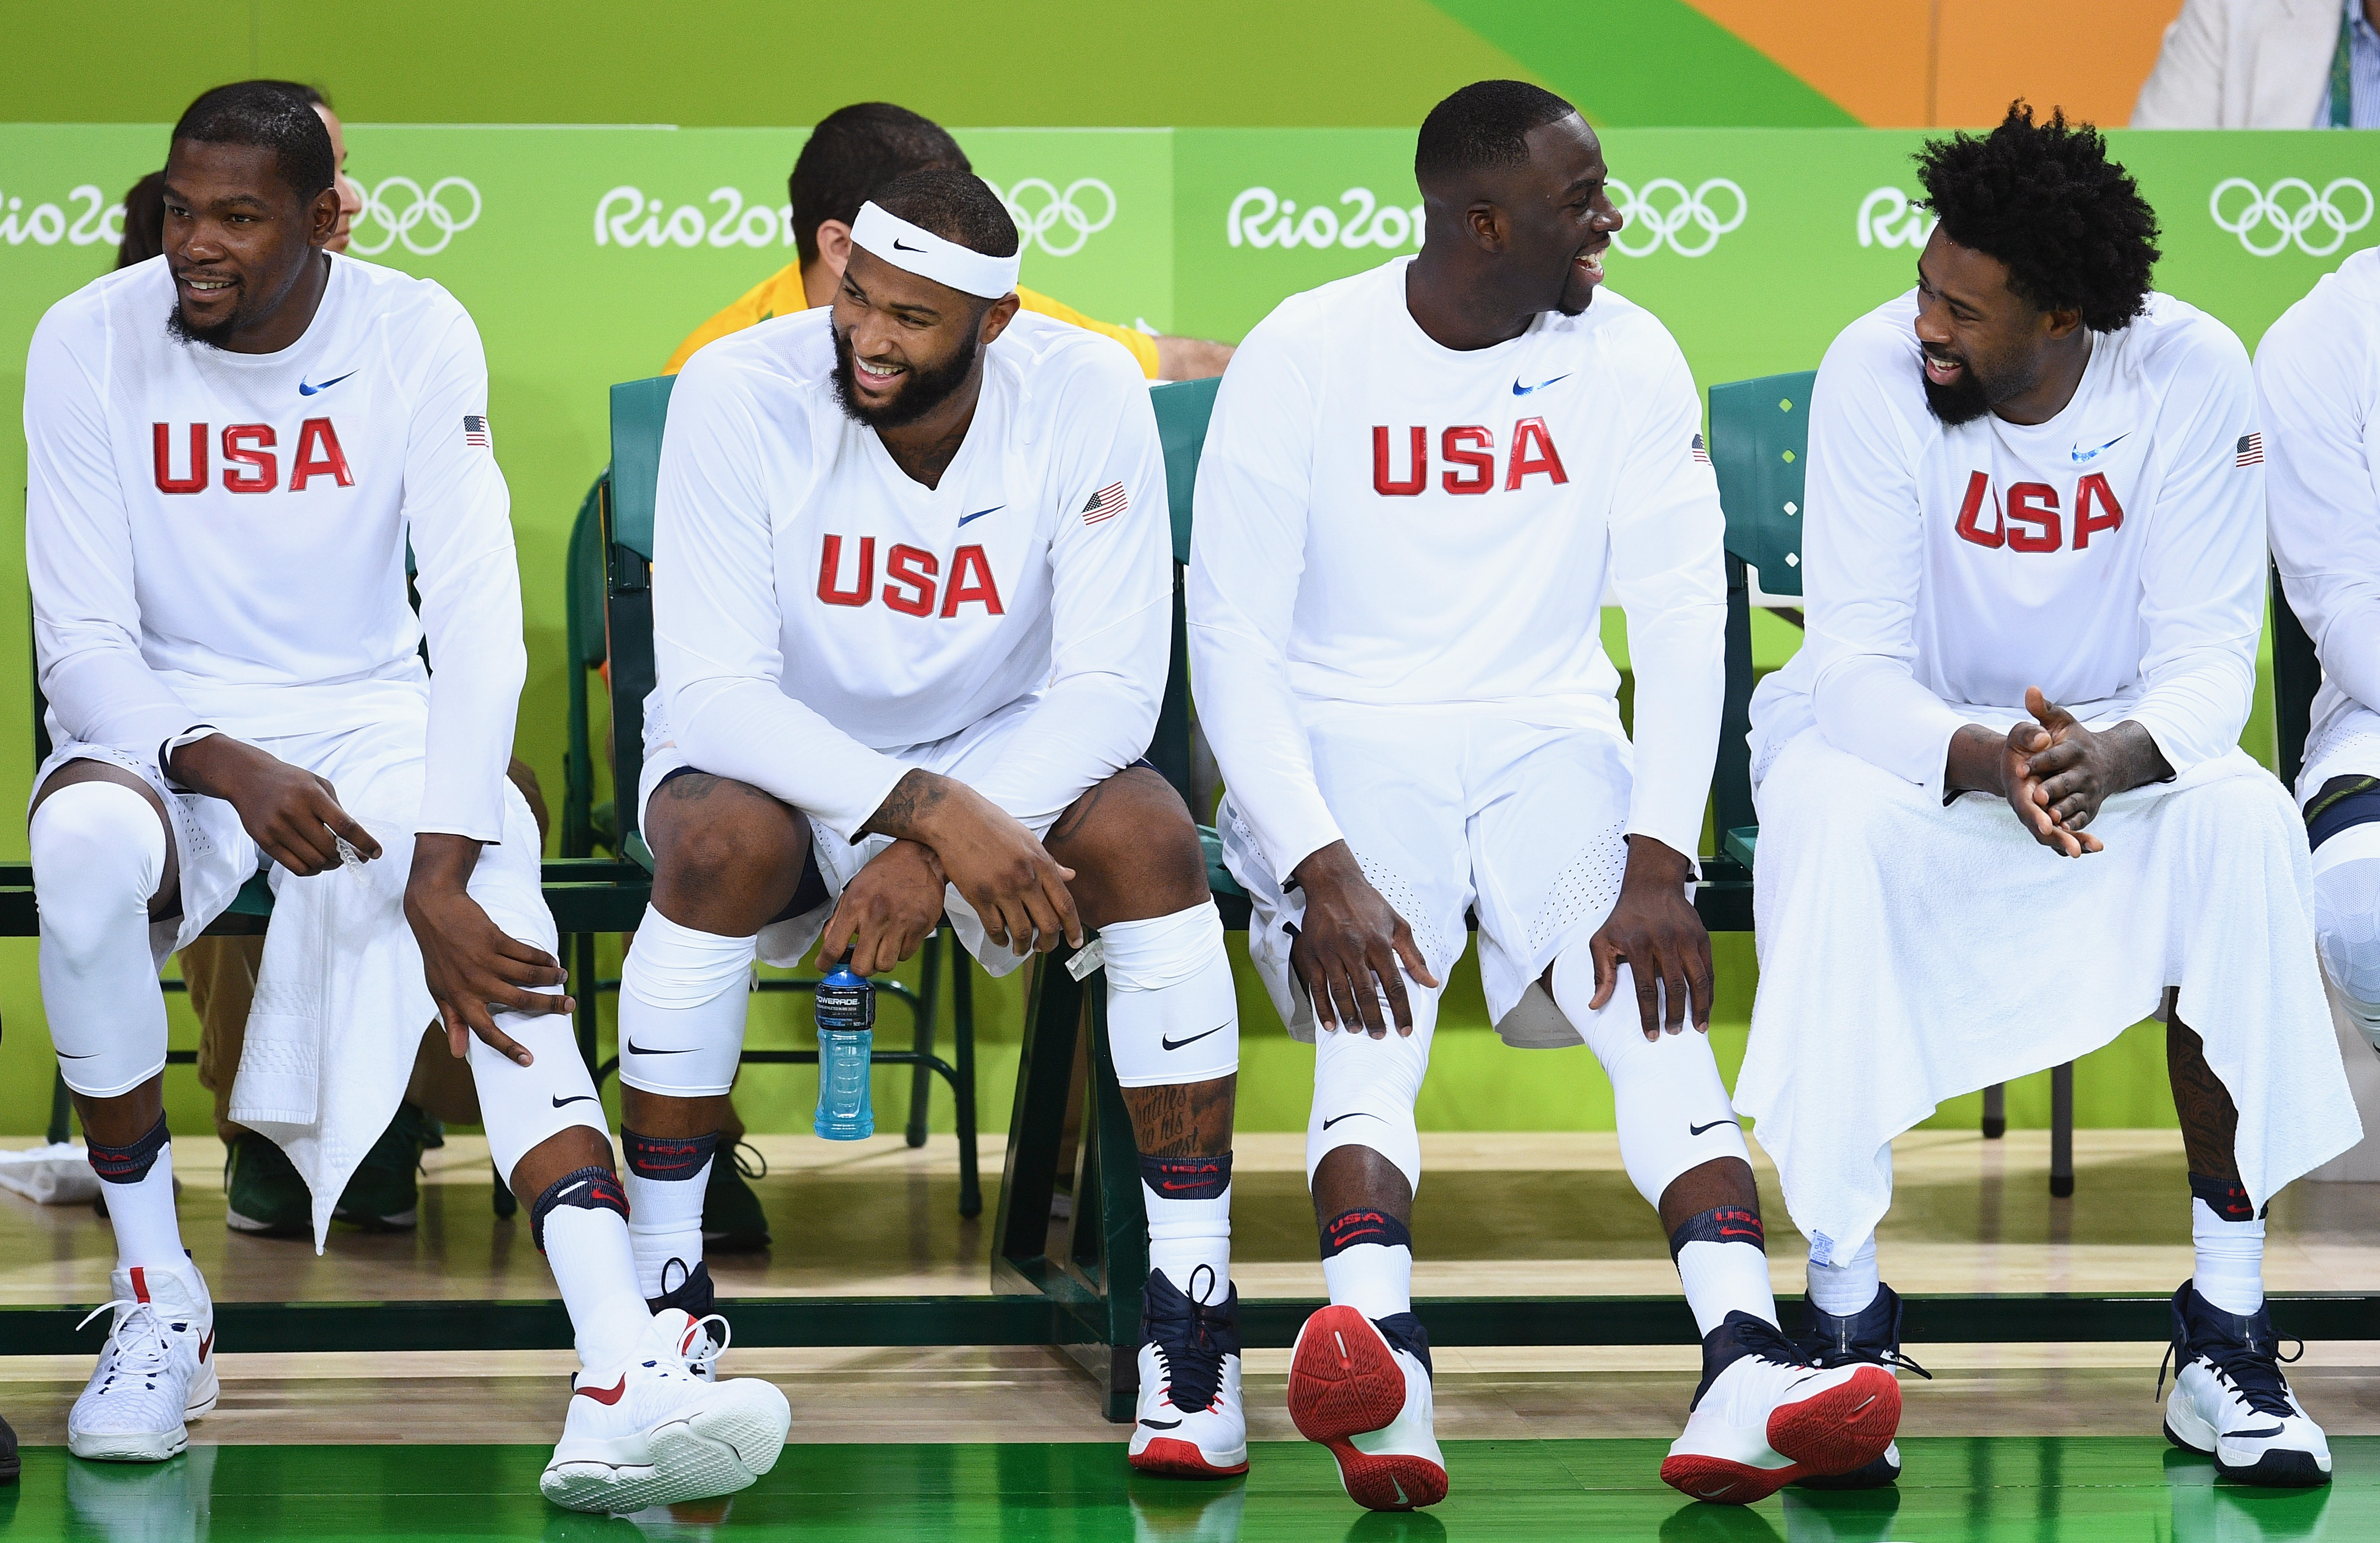 Basketball - Olympics: Day 3